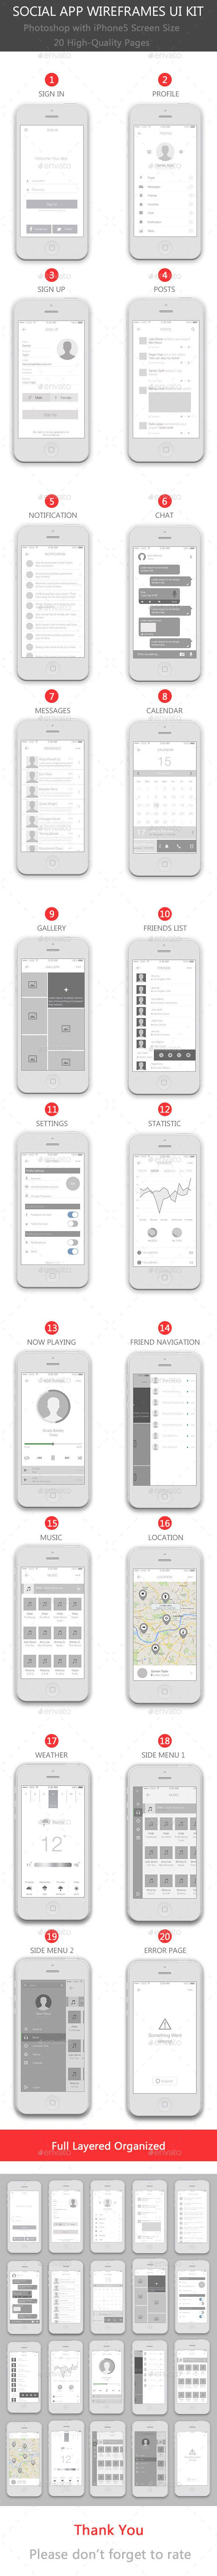 Social App Wireframes User Interface Kit Template #design #ui Download: http://graphicriver.net/item/social-app-wireframes-ui-kit/11182243?ref=ksioks